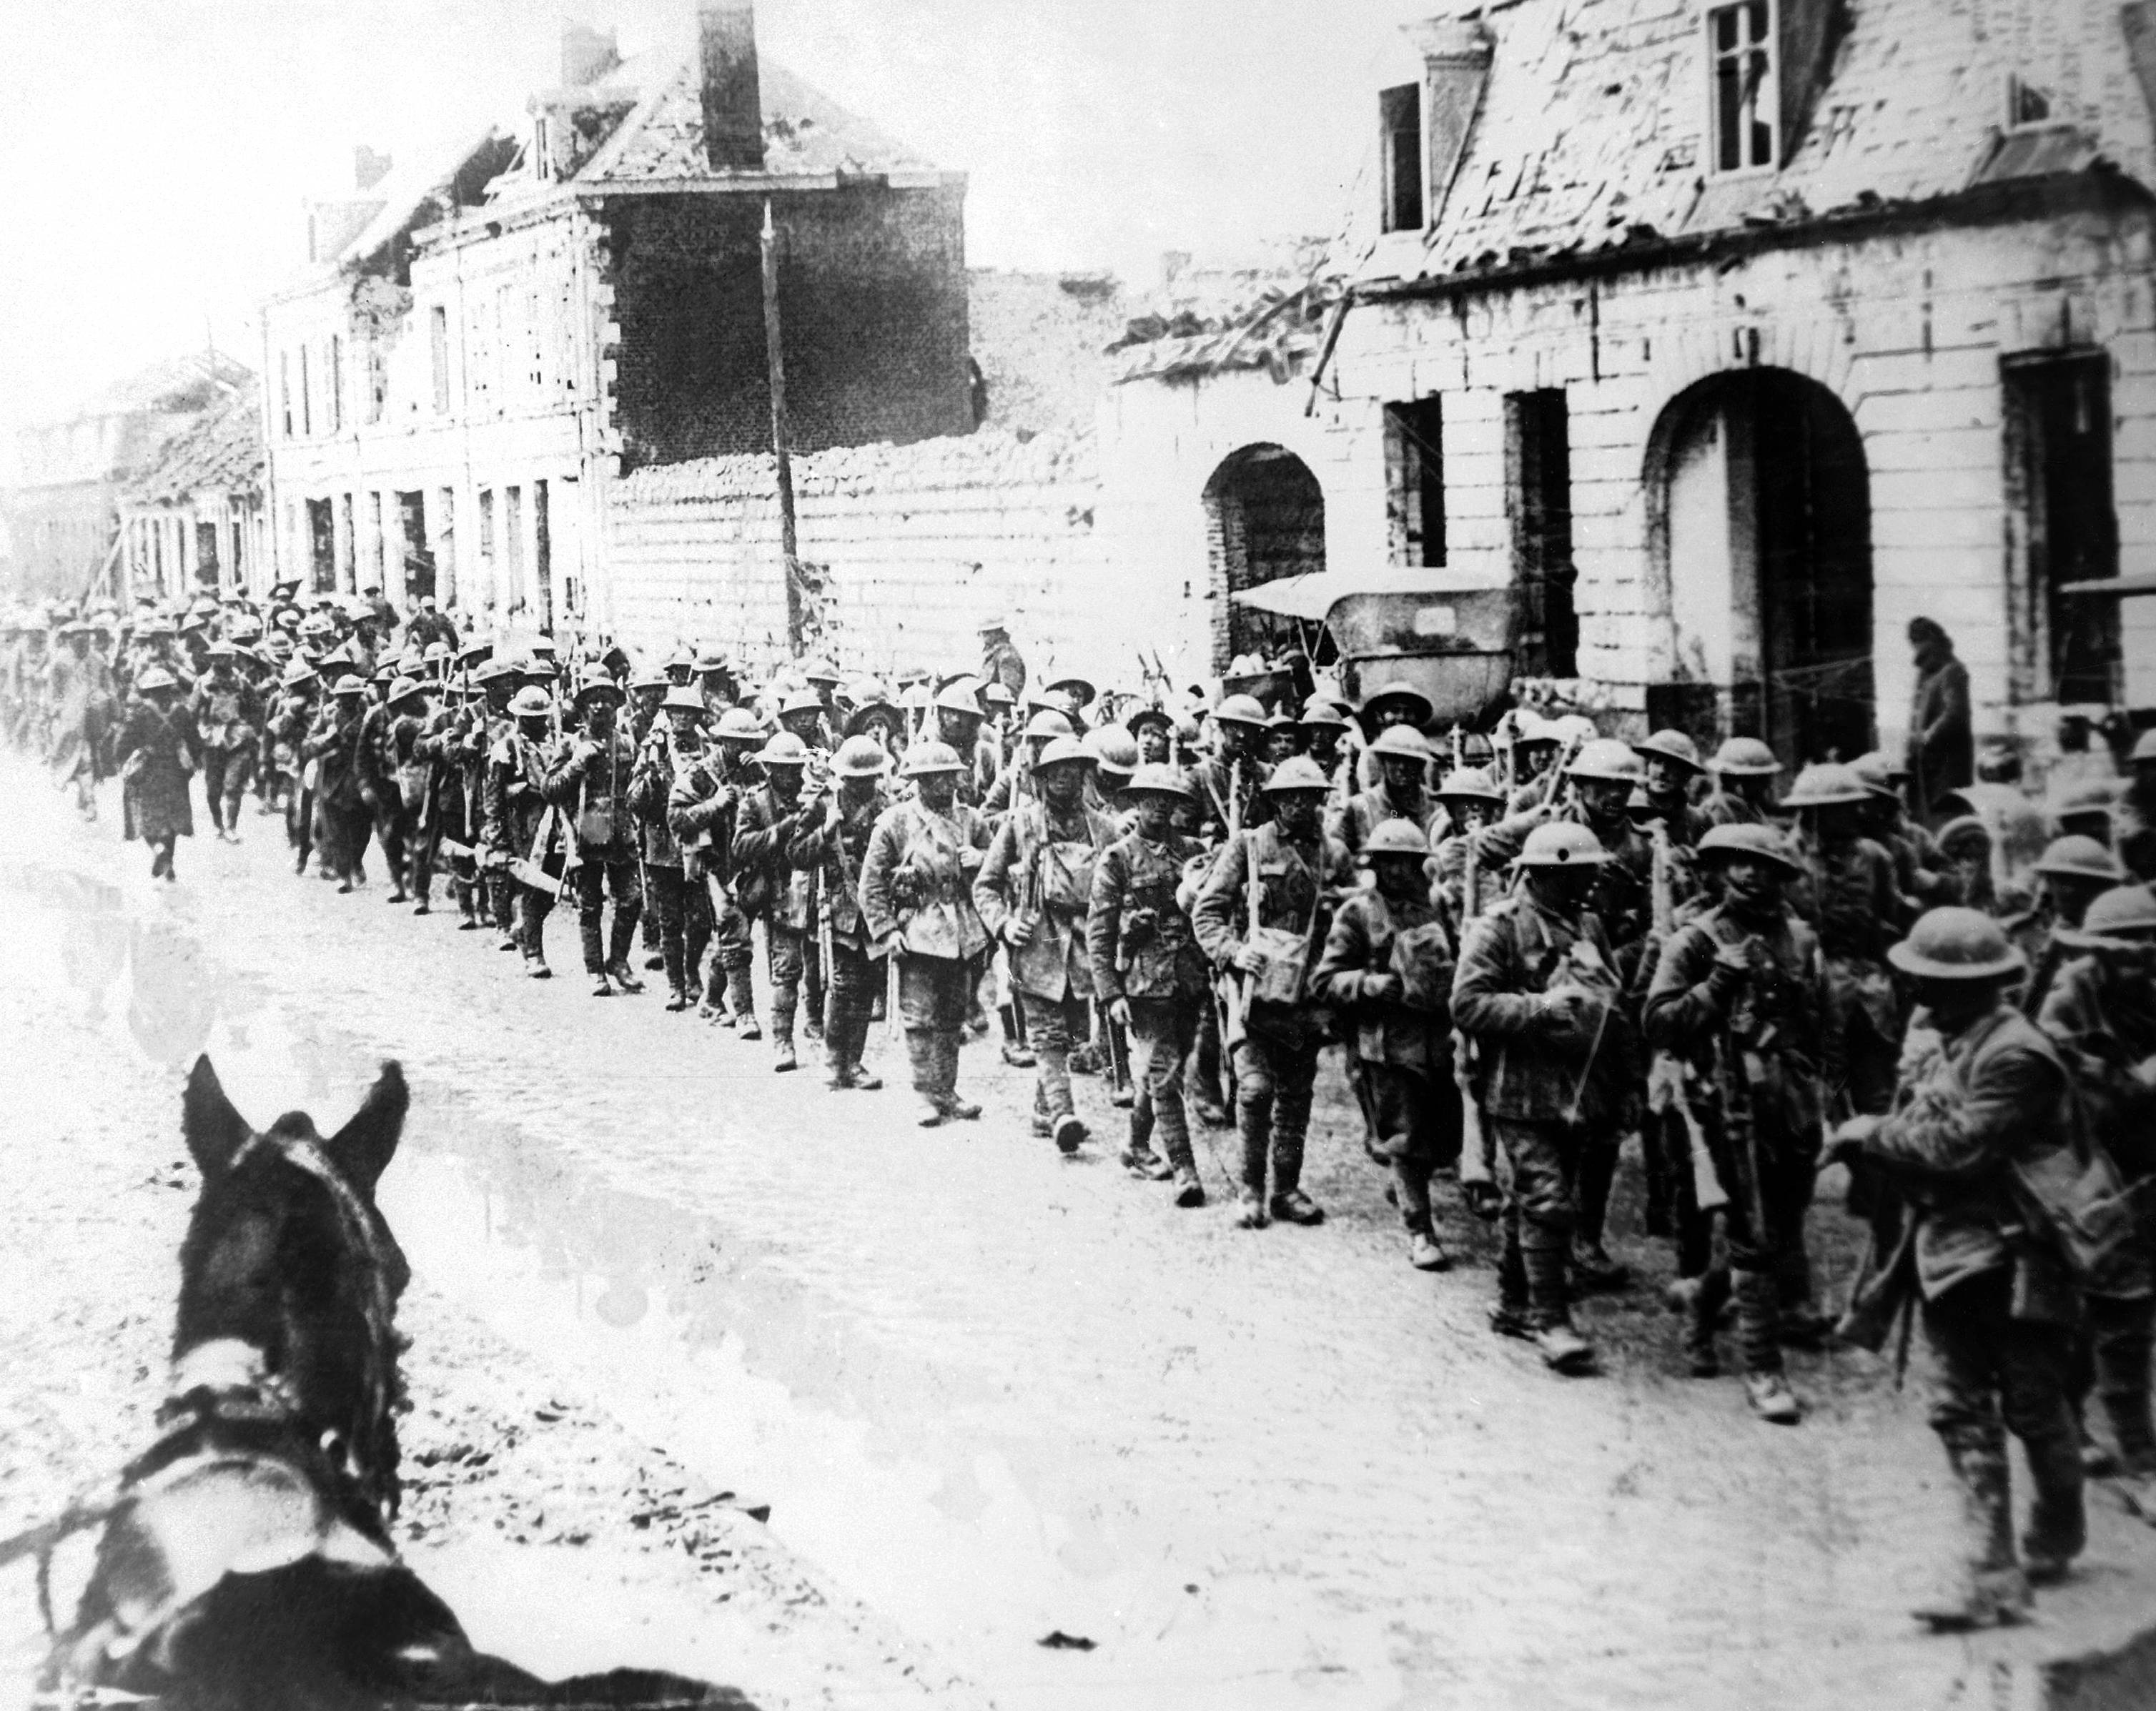 66 OF 100: In this 1917 file photo, British World War I soldiers return in formation to Ypres, Belgium.